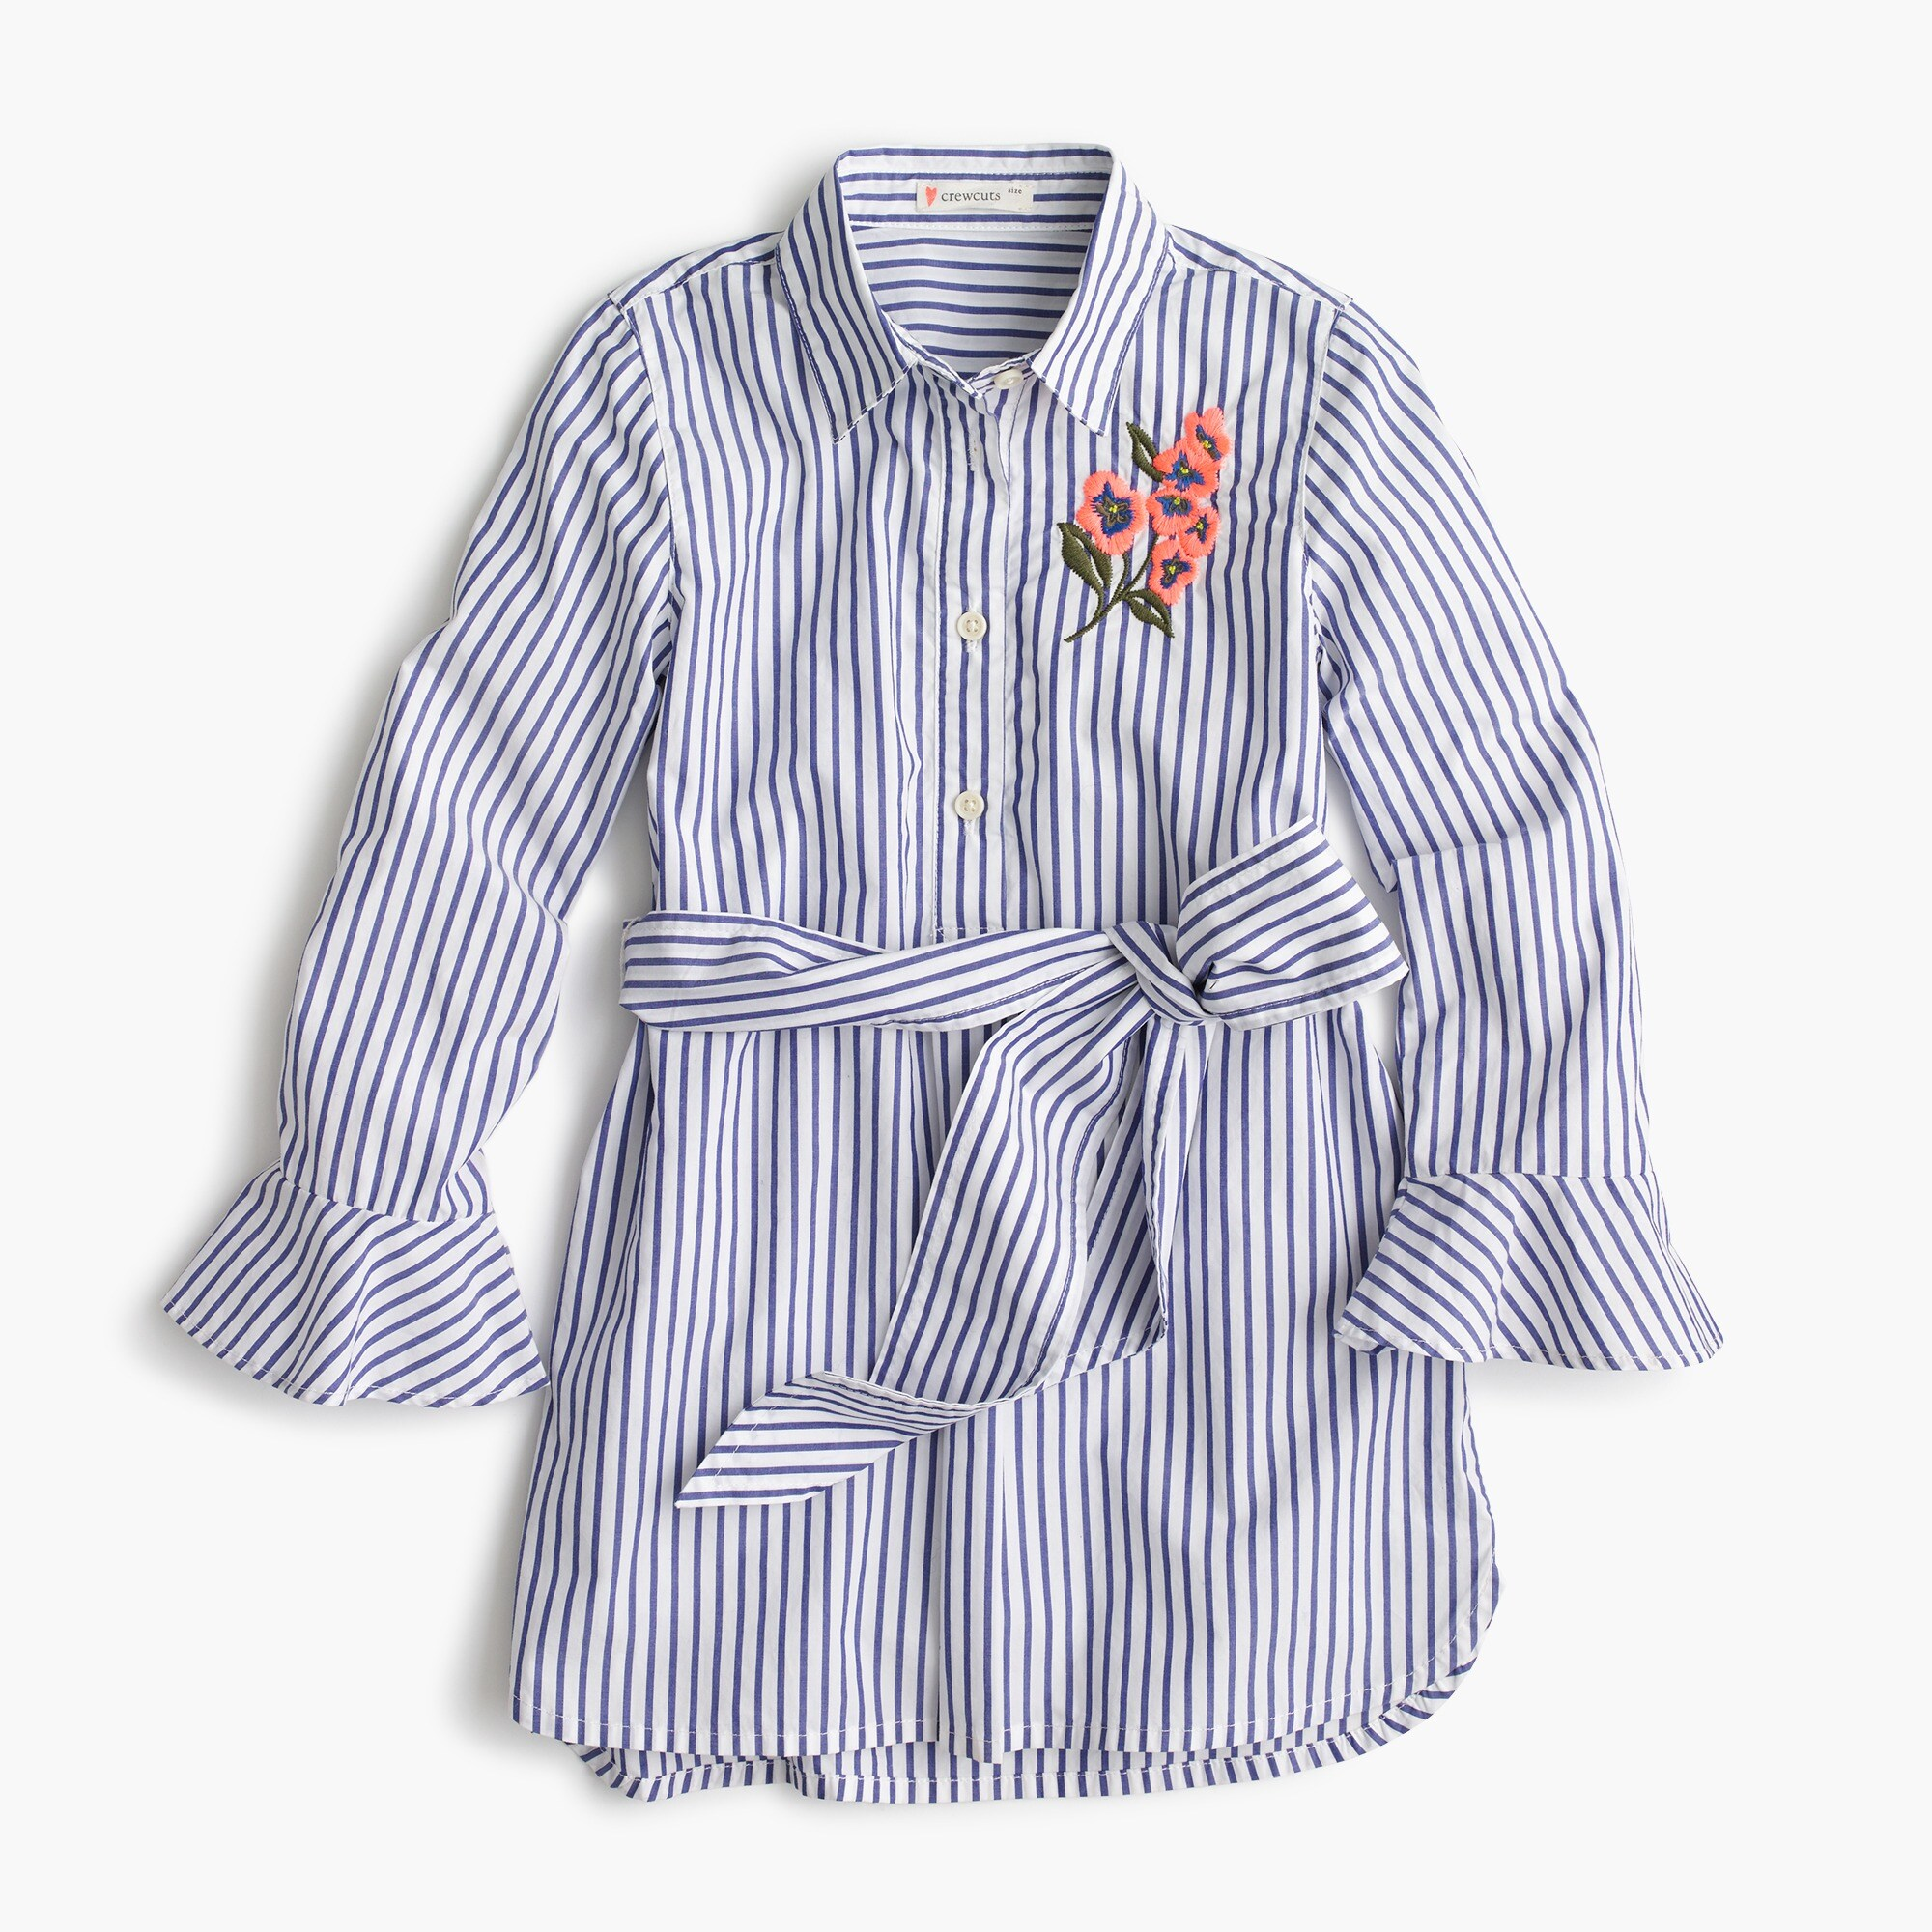 Image 1 for Girls' striped flower-embroidered tunic